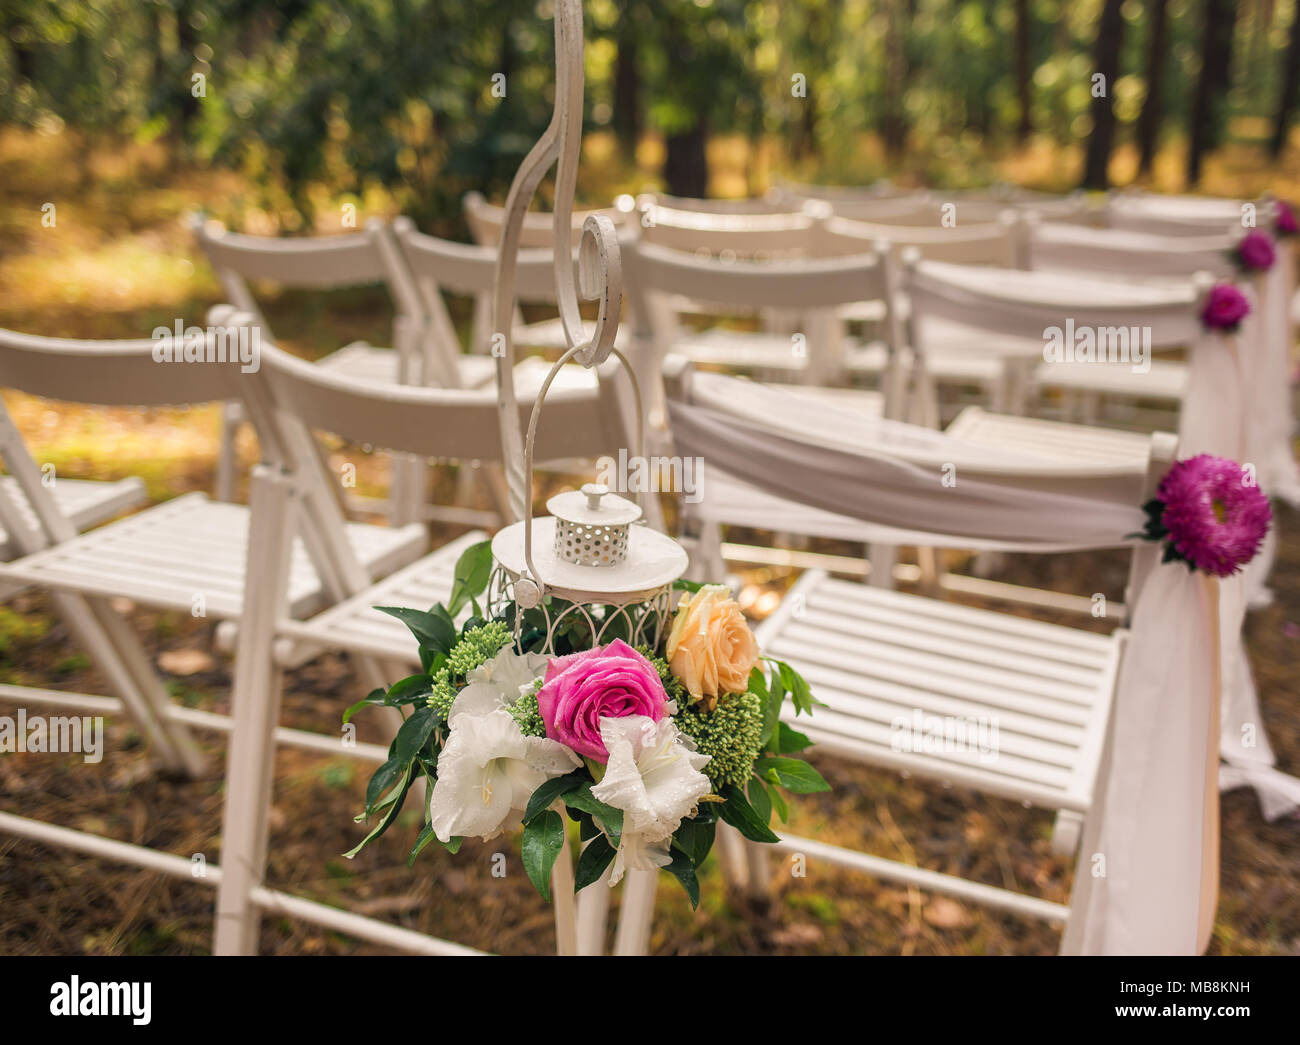 Floral elegant elements of wedding decorations. Settings for romantic wedding ceremony outside in sunny forest. White wooden empty chairs decorated wi Stock Photo